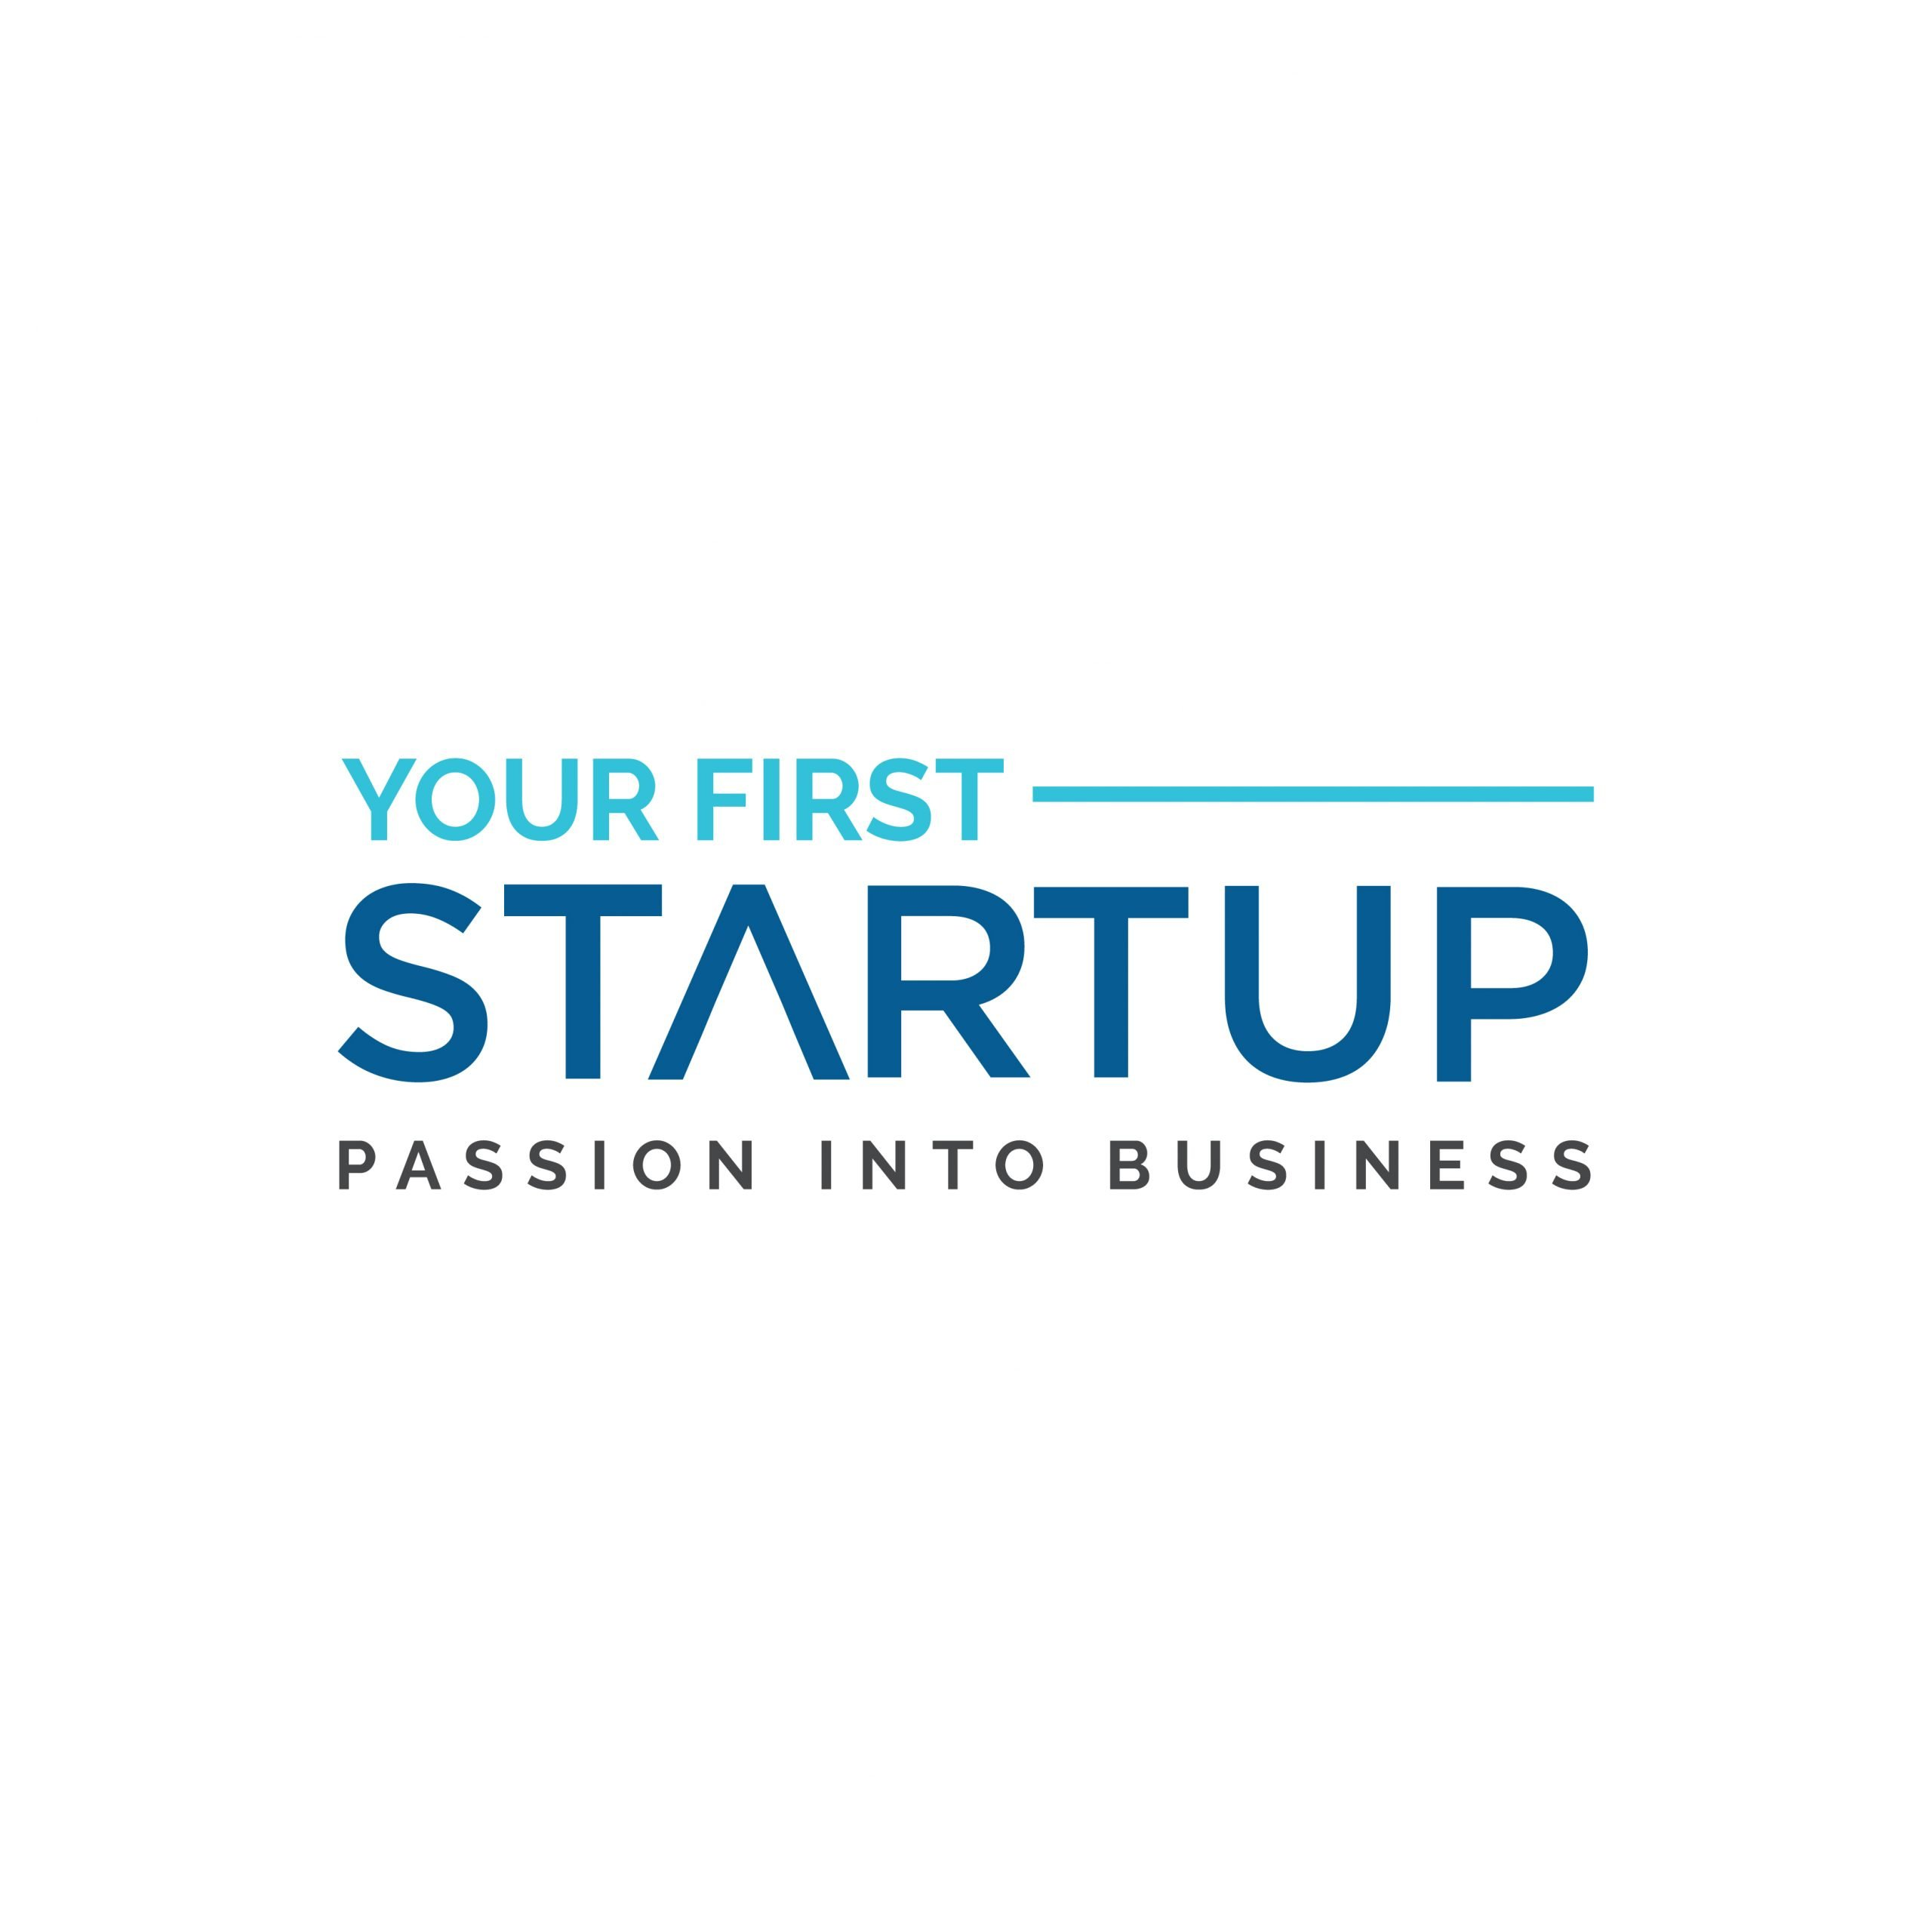 YFS (Your First Startup)